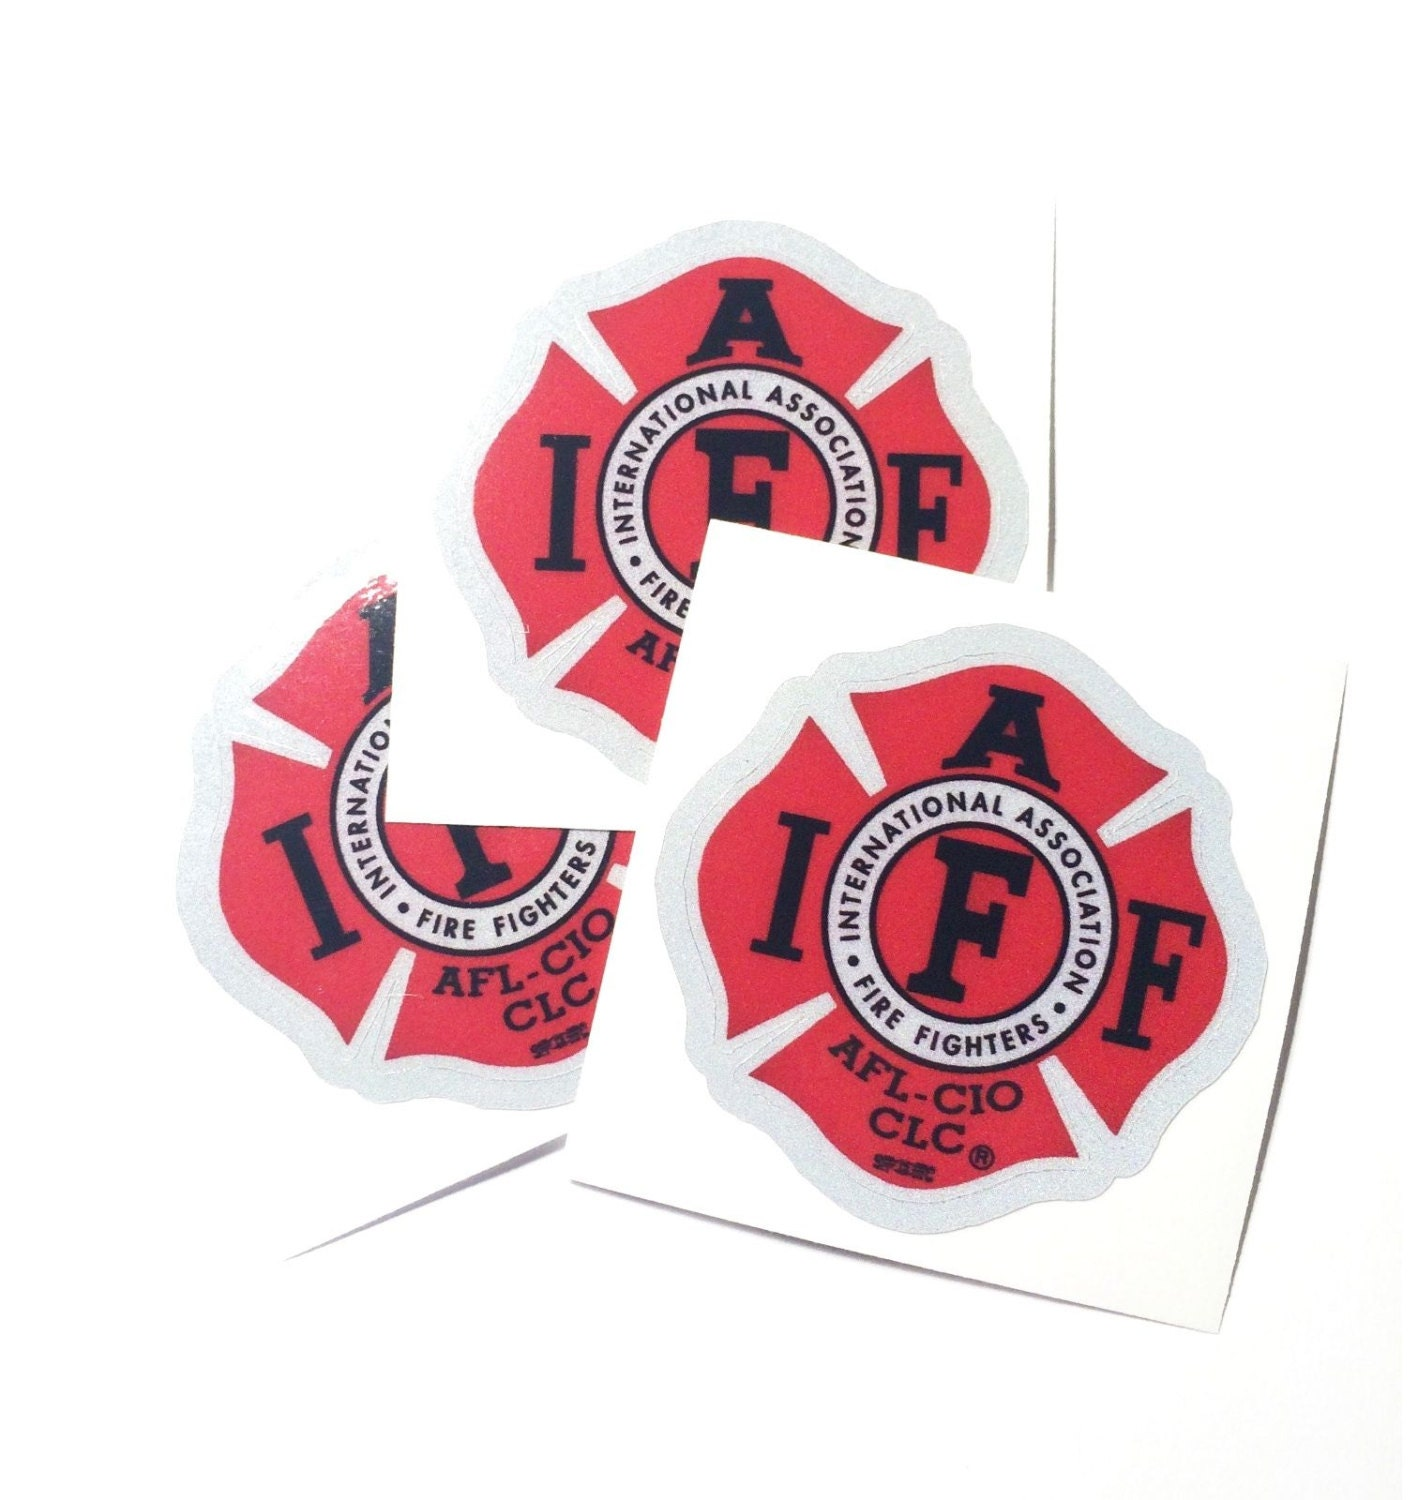 X The IAFF Union M True Red REFLECTIVE Vinyl Firefighter - Reflective fire helmet decals